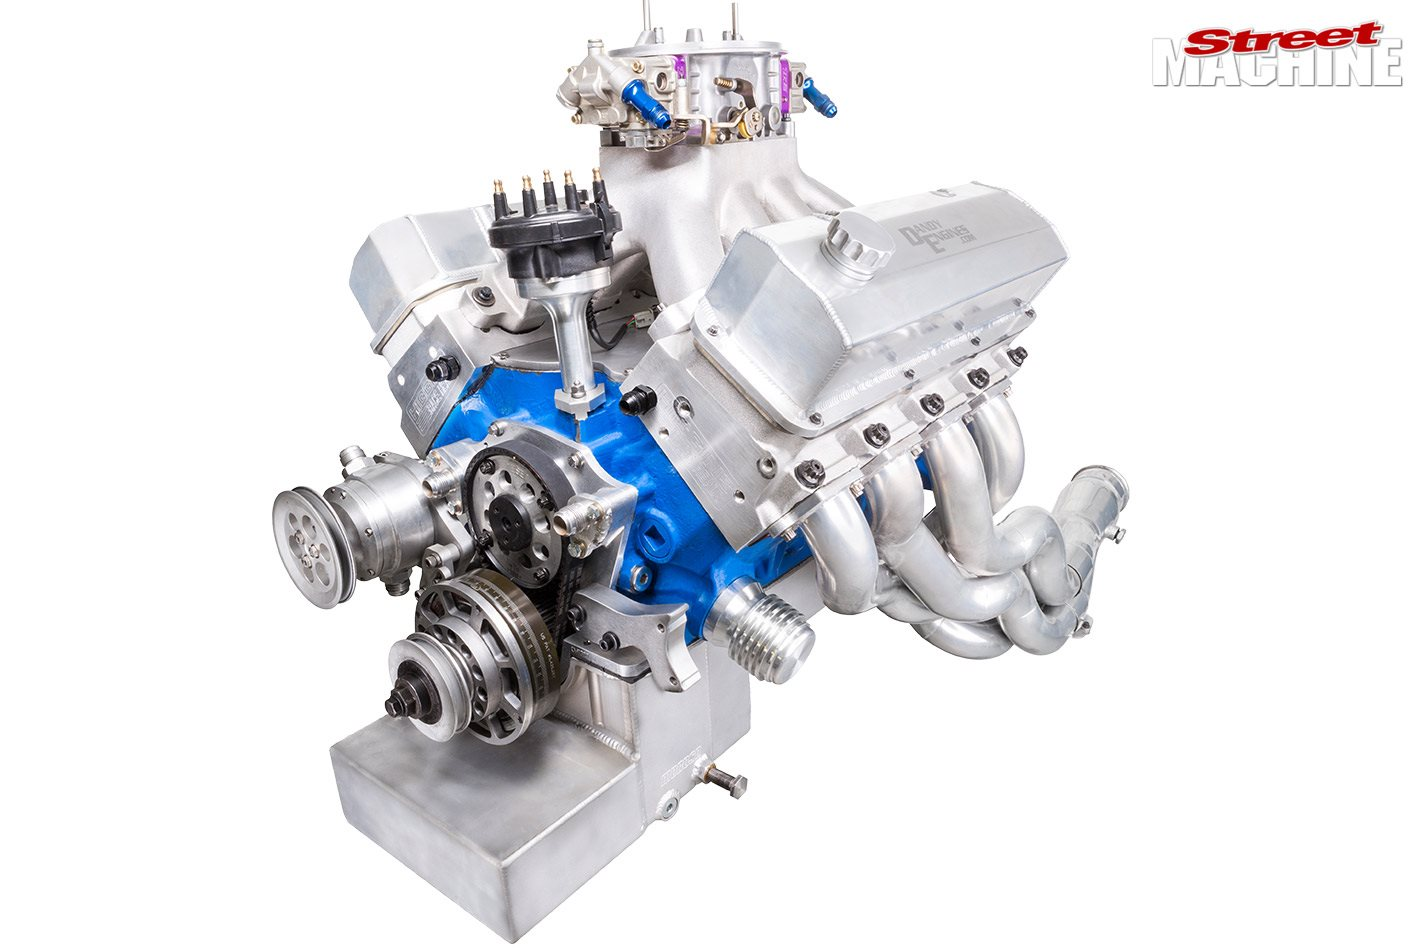 460ci small-block Ford engine - Mill of the Month